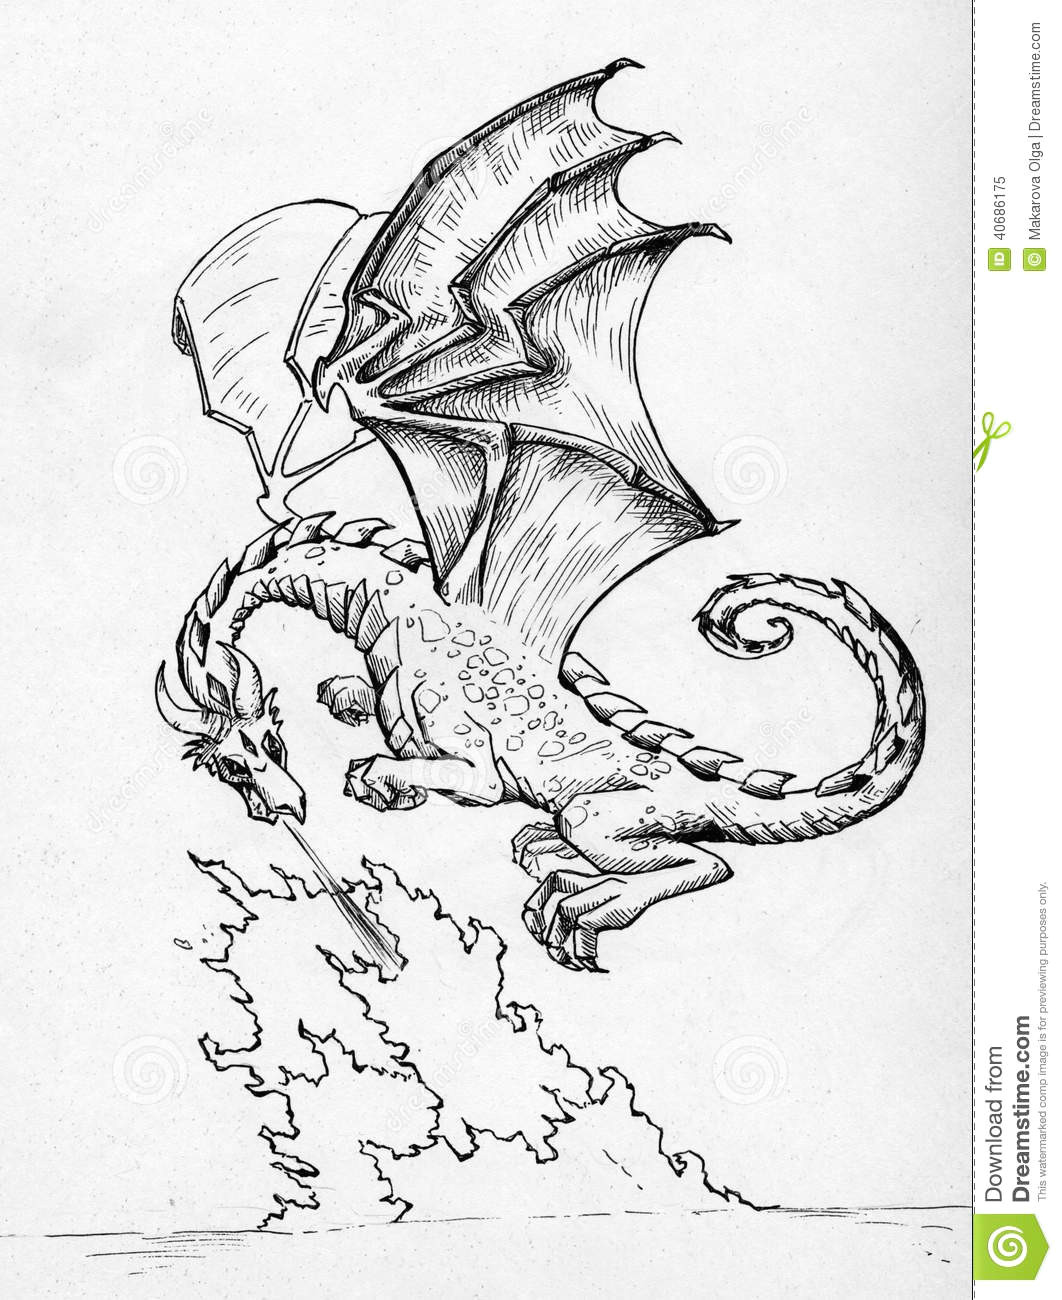 Easy Drawings Of Dragons Breathing Fire Dragon Breathing Fire Stock Illustration Illustration Of